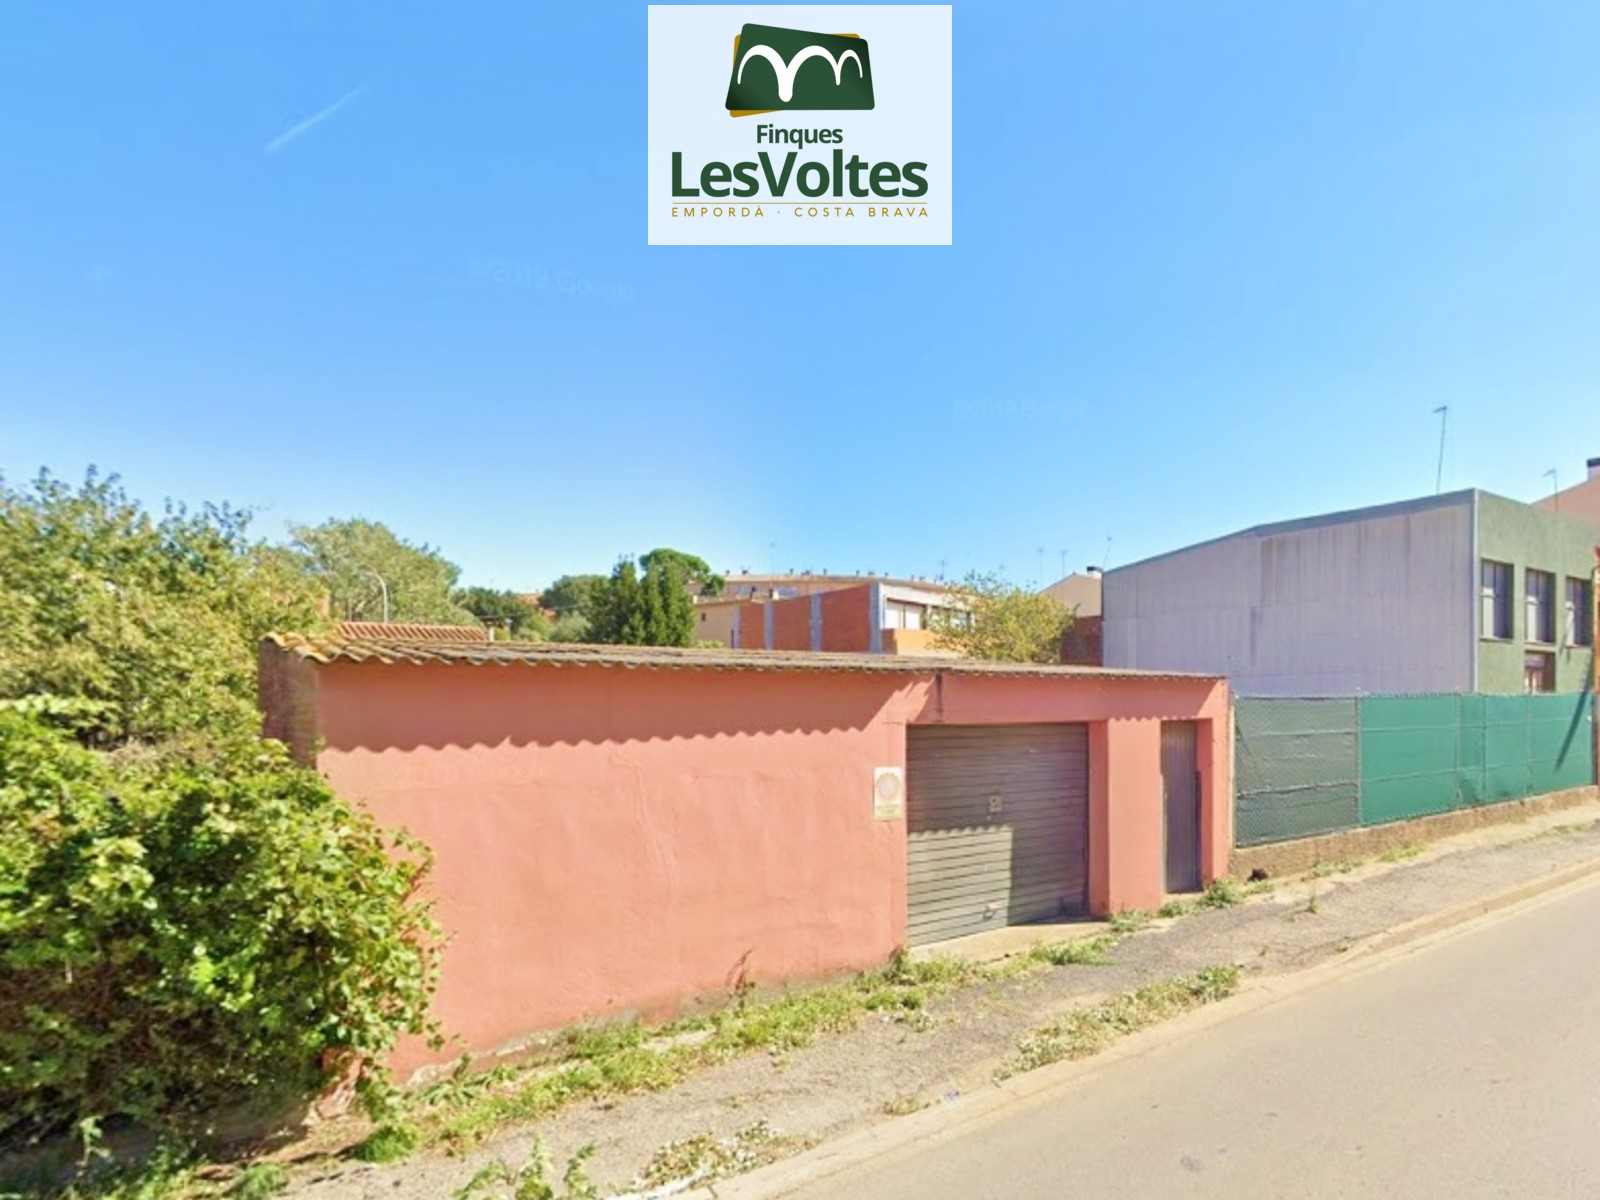 Plot for sale in Palafrugell with large facade and high building. Very good opportunity.